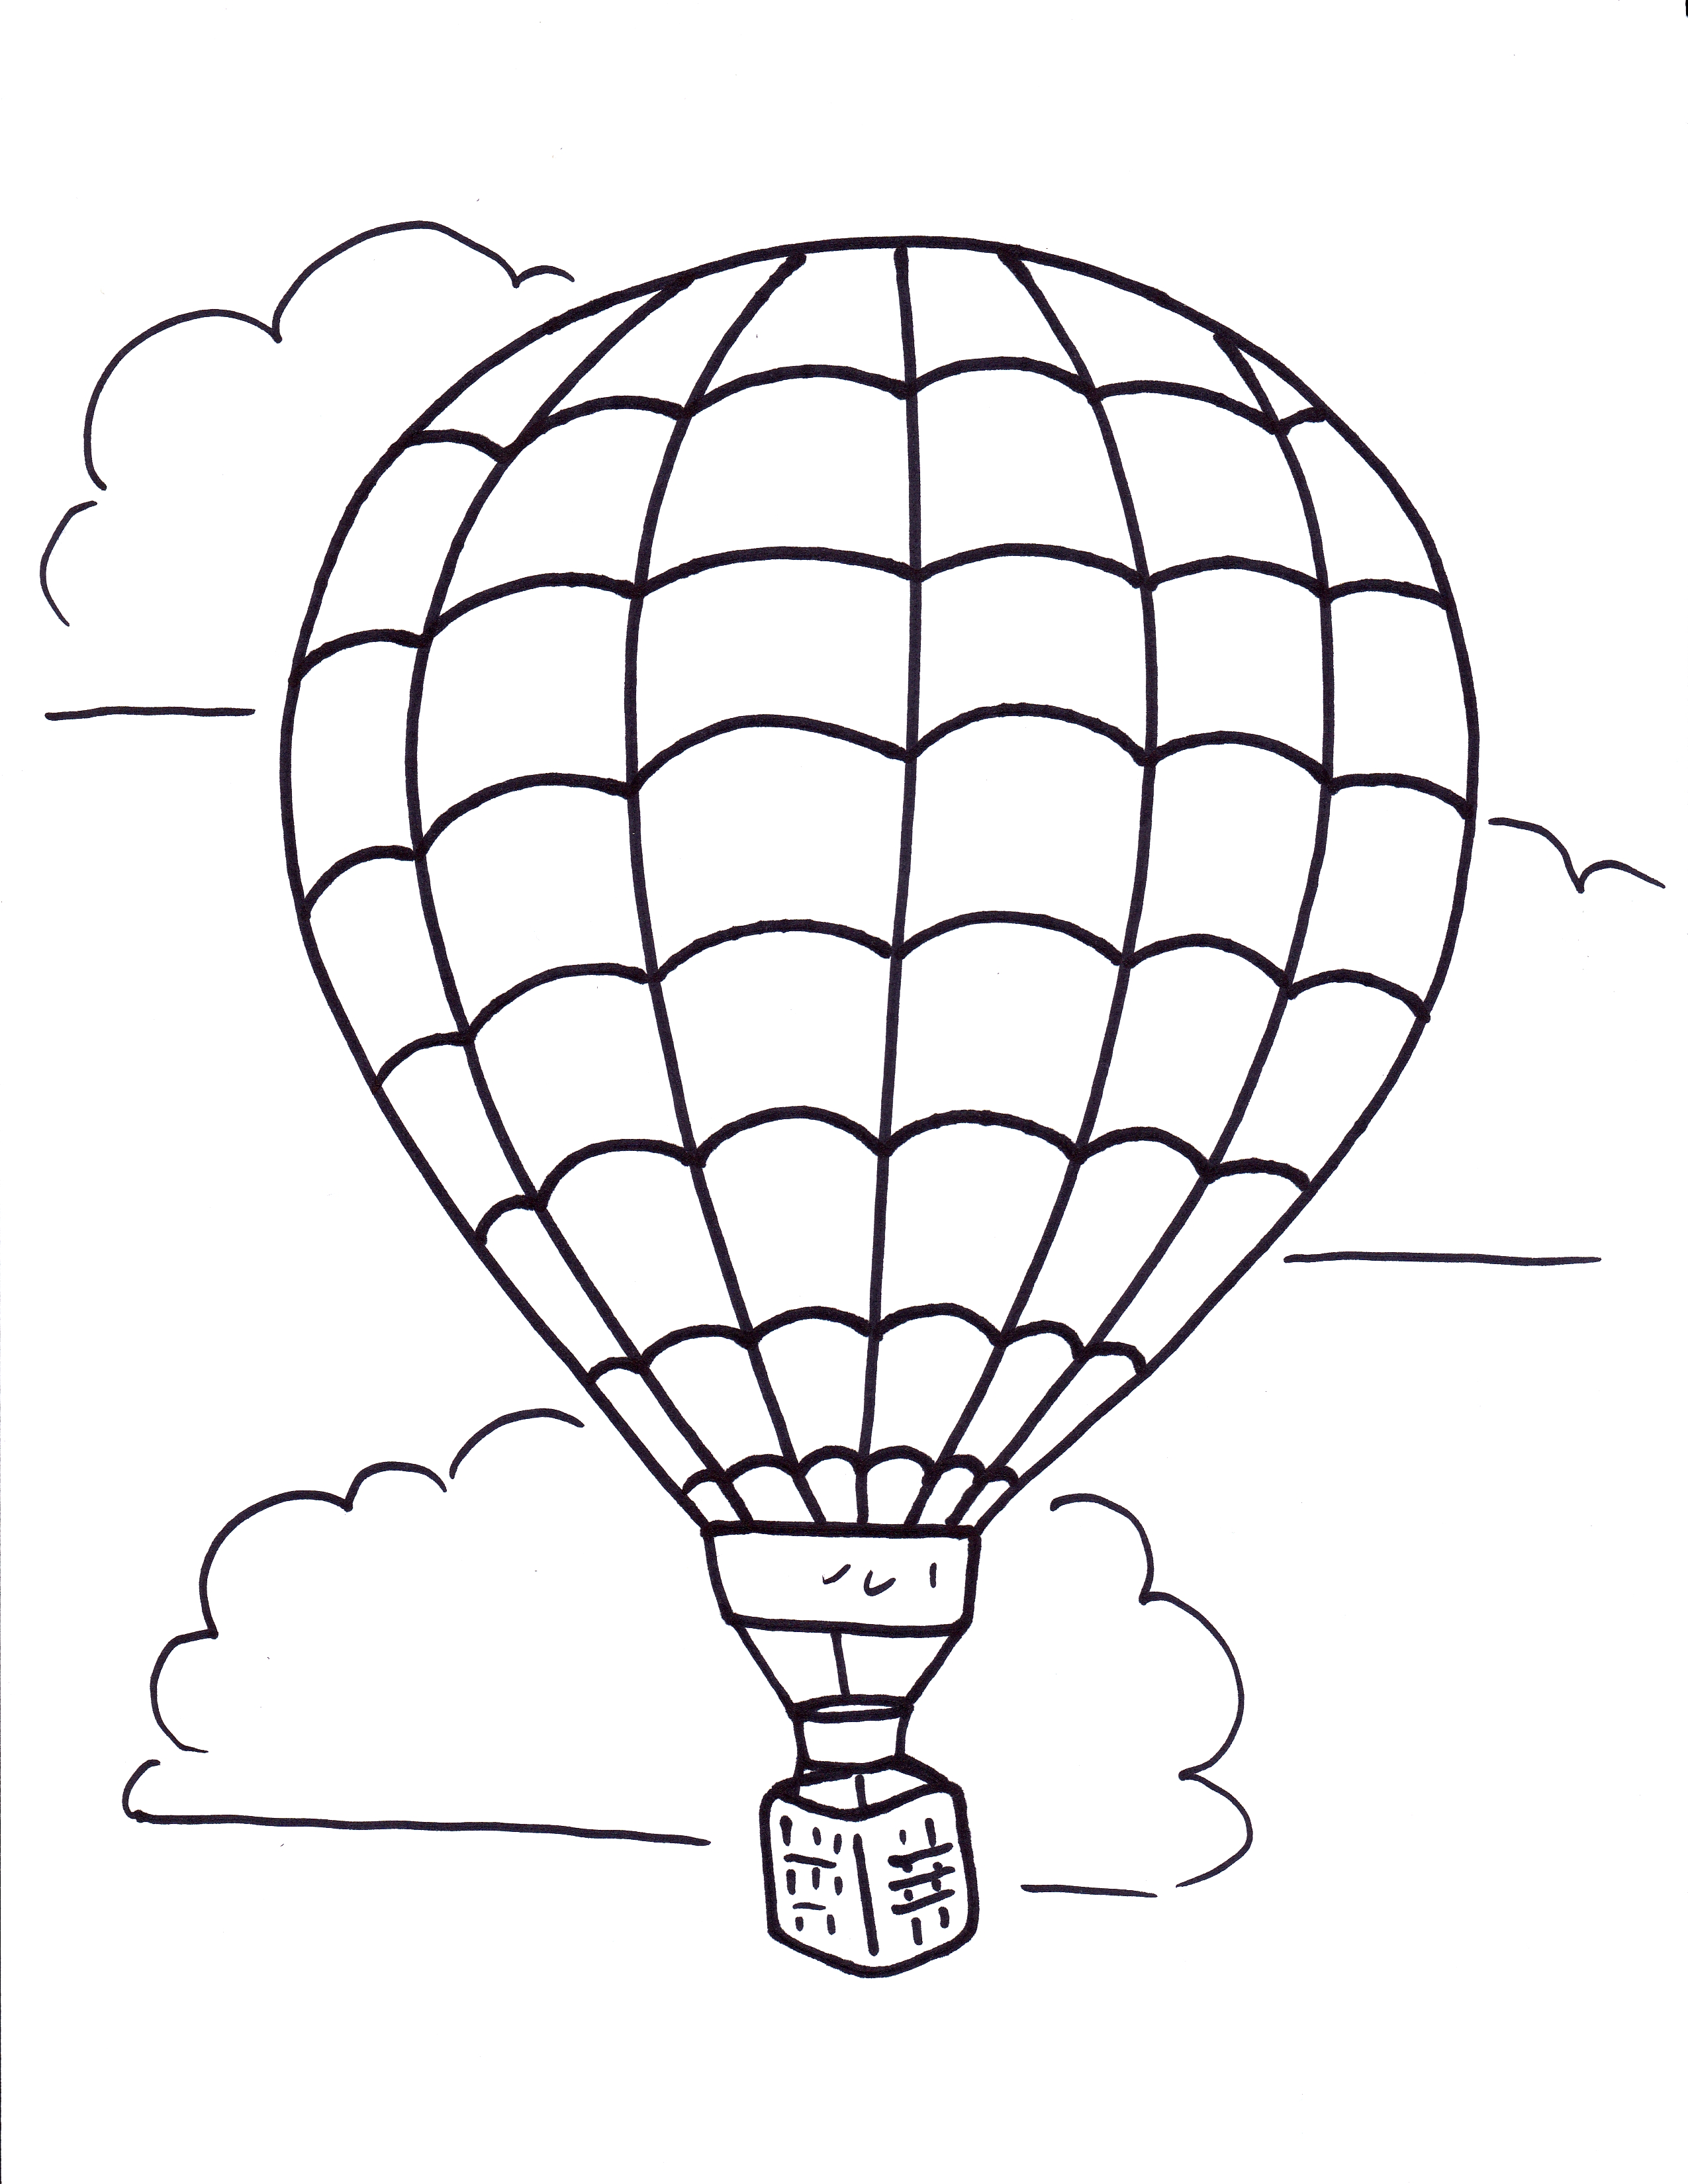 It's just a photo of Hot Air Balloon Coloring Pages Free Printable inside writing